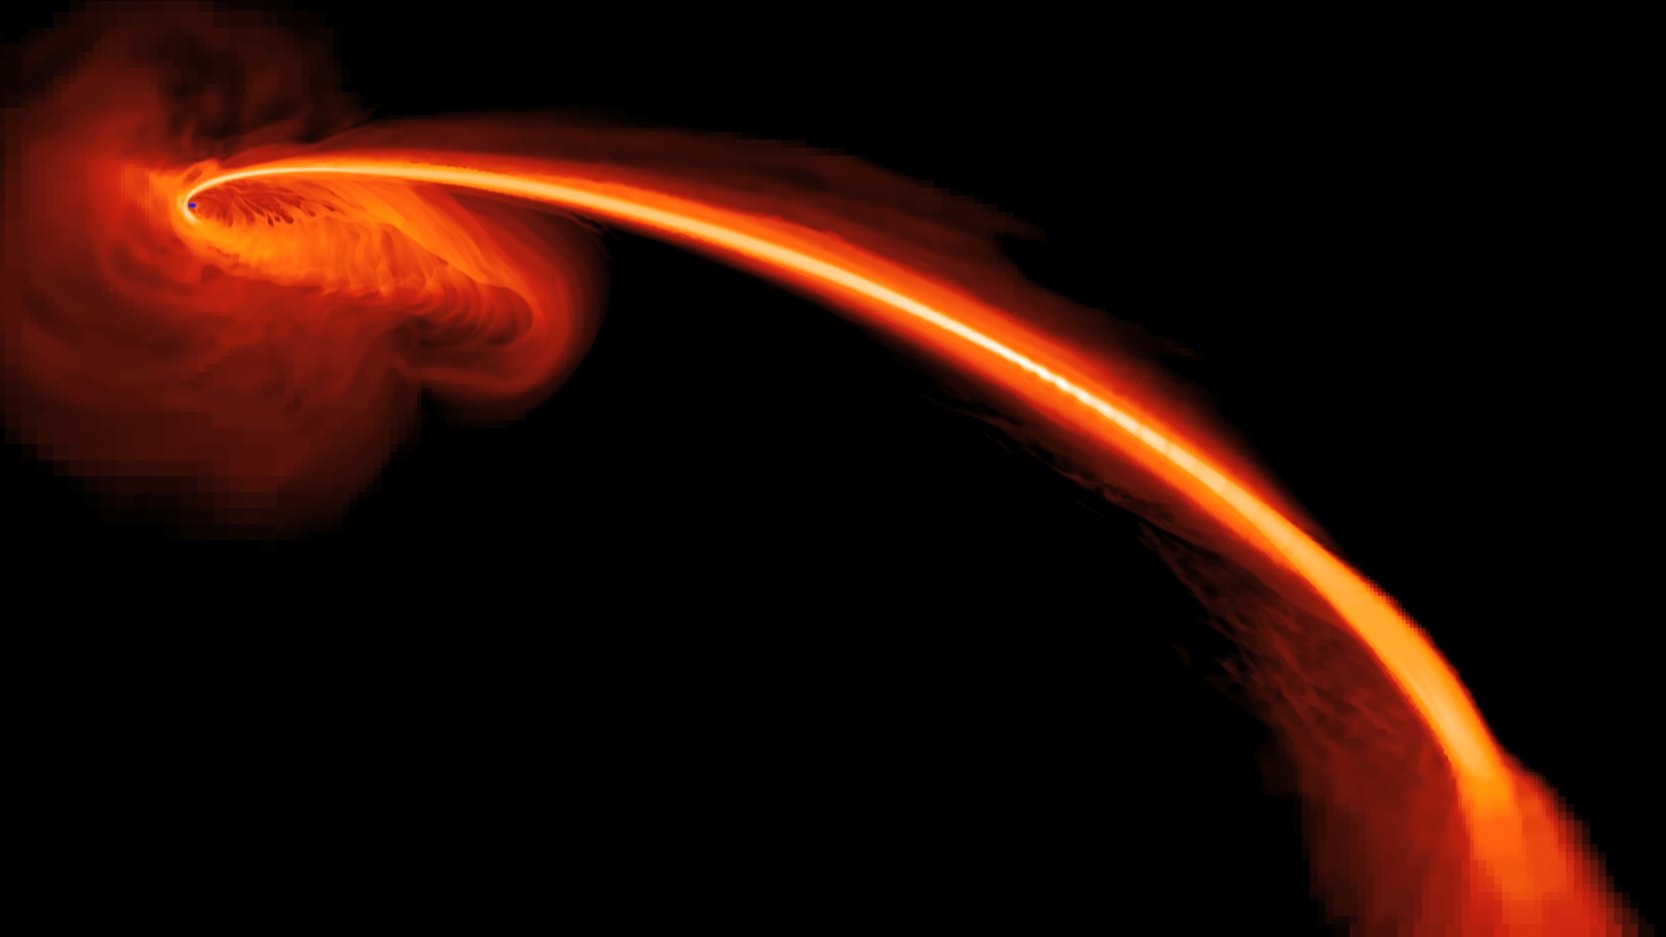 supermassive black hole sagittarius a  black hole caught in a stellar homicide